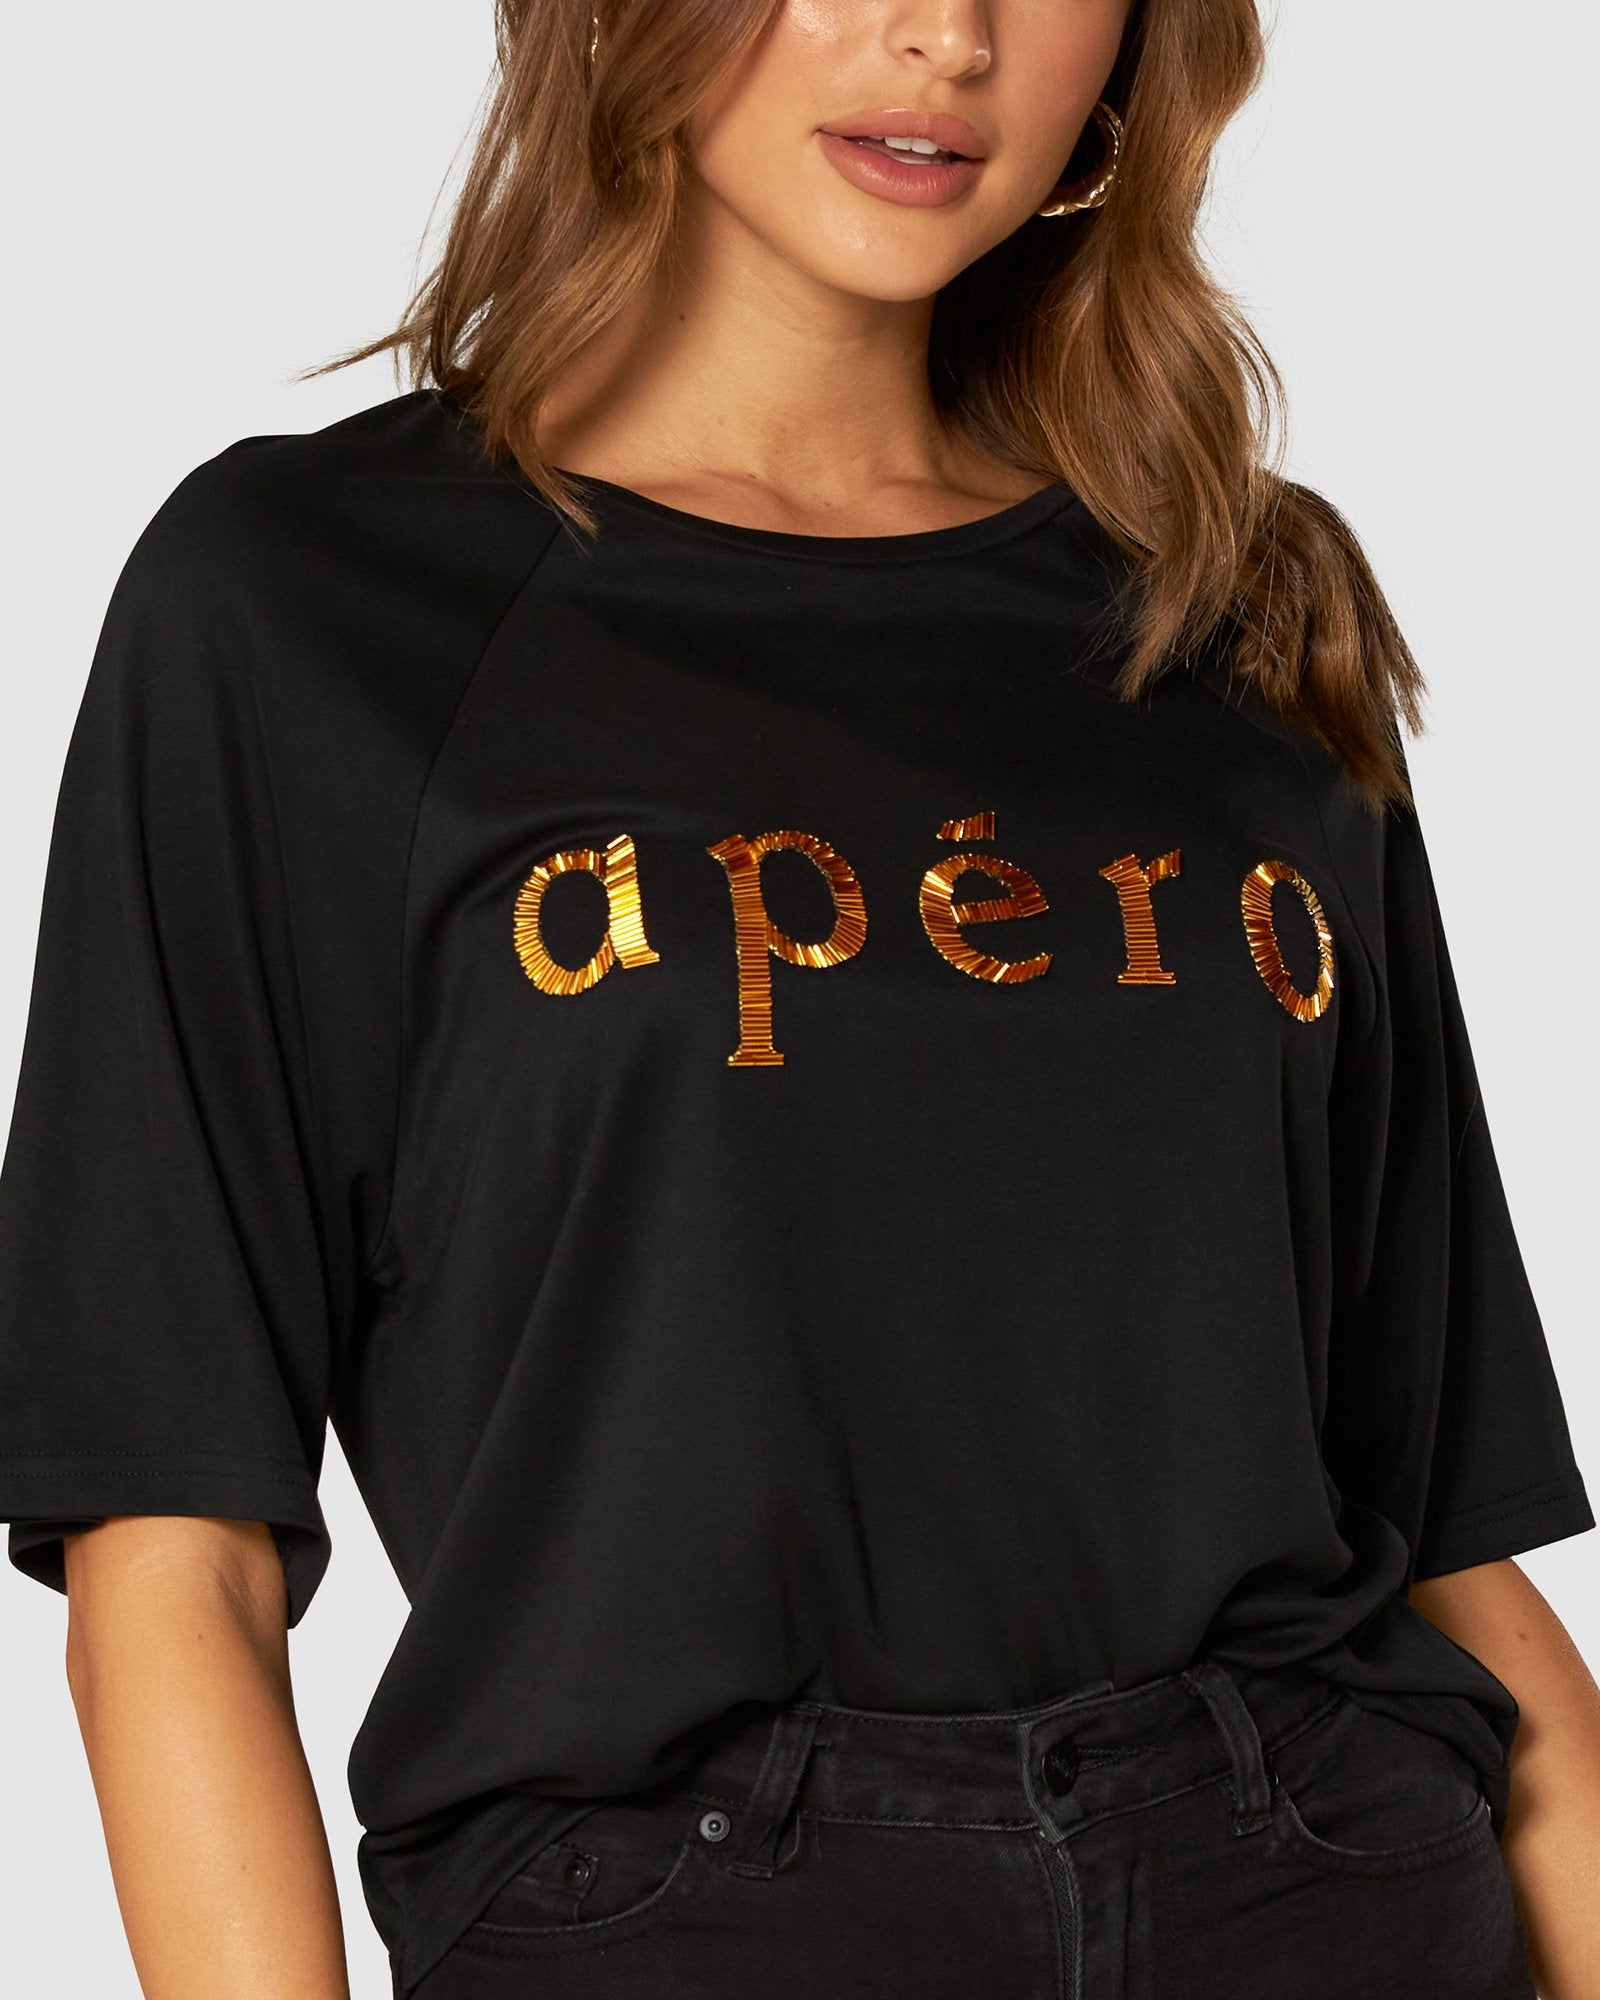 APERO BROOKLYN BEADED OVERSIZED TEE - BLACK/GOLD